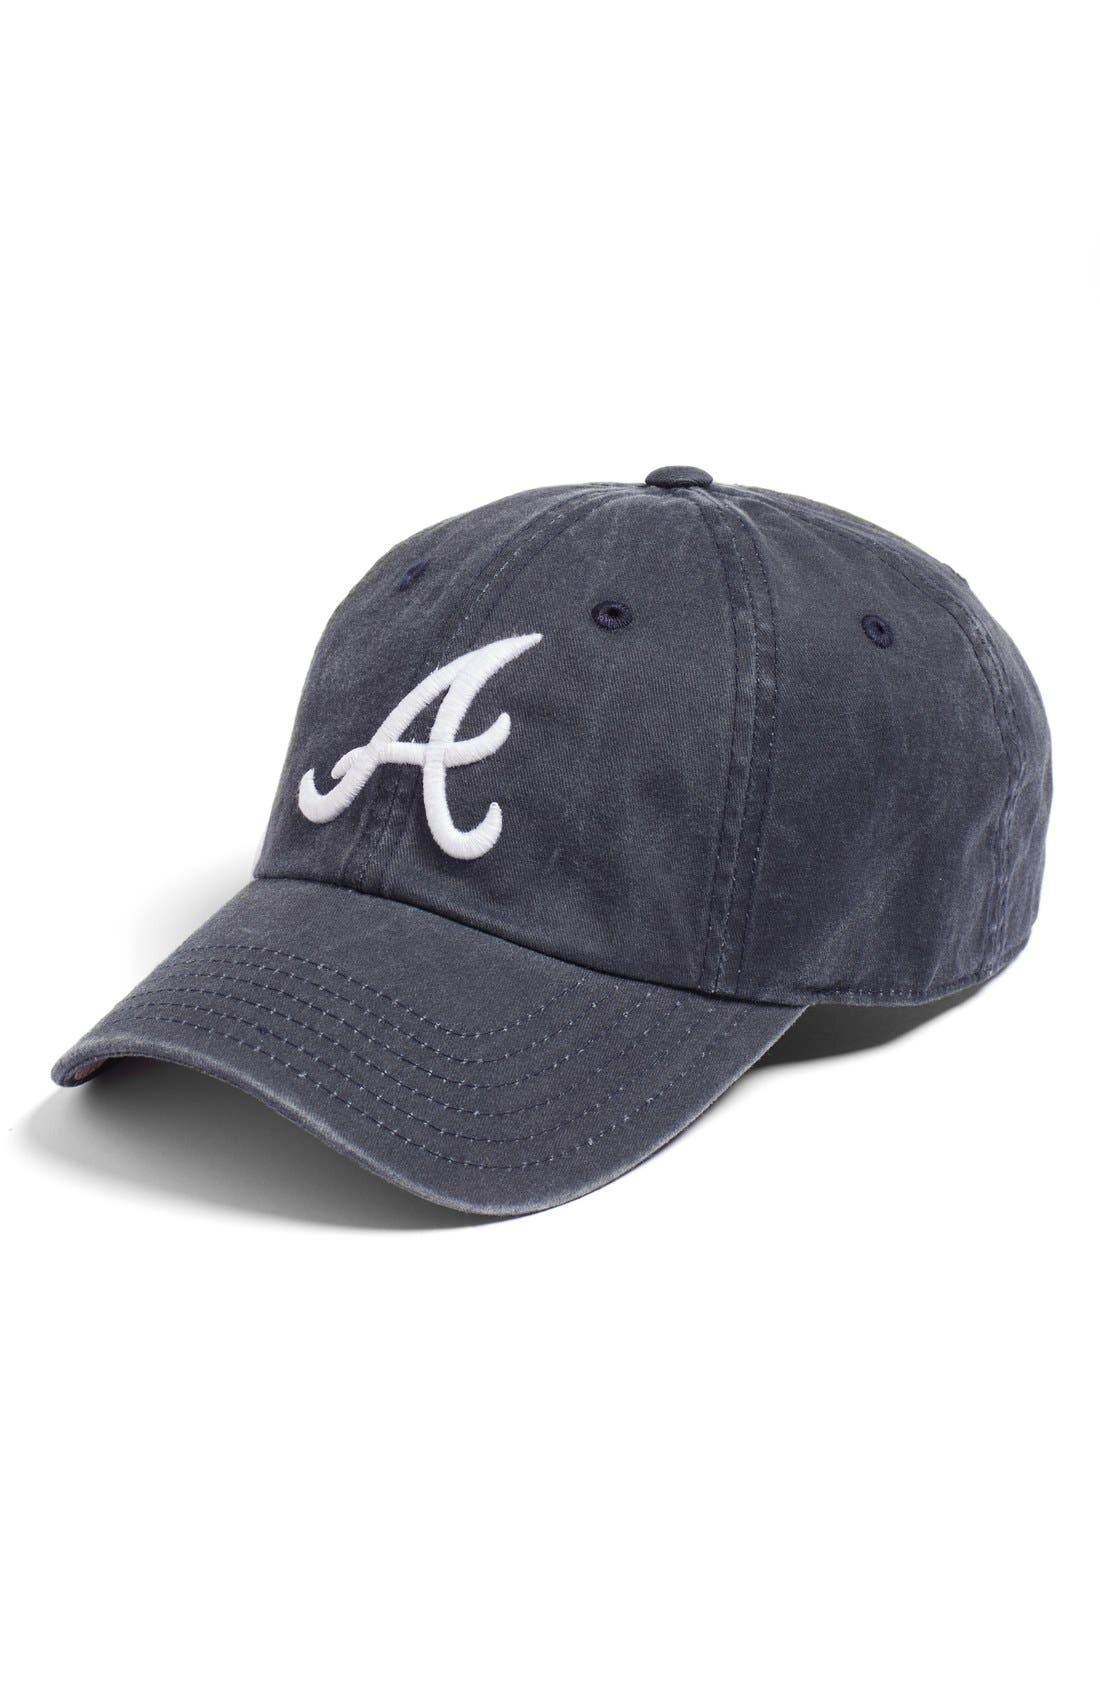 American Needle New Raglan - Atlanta Braves Baseball Cap